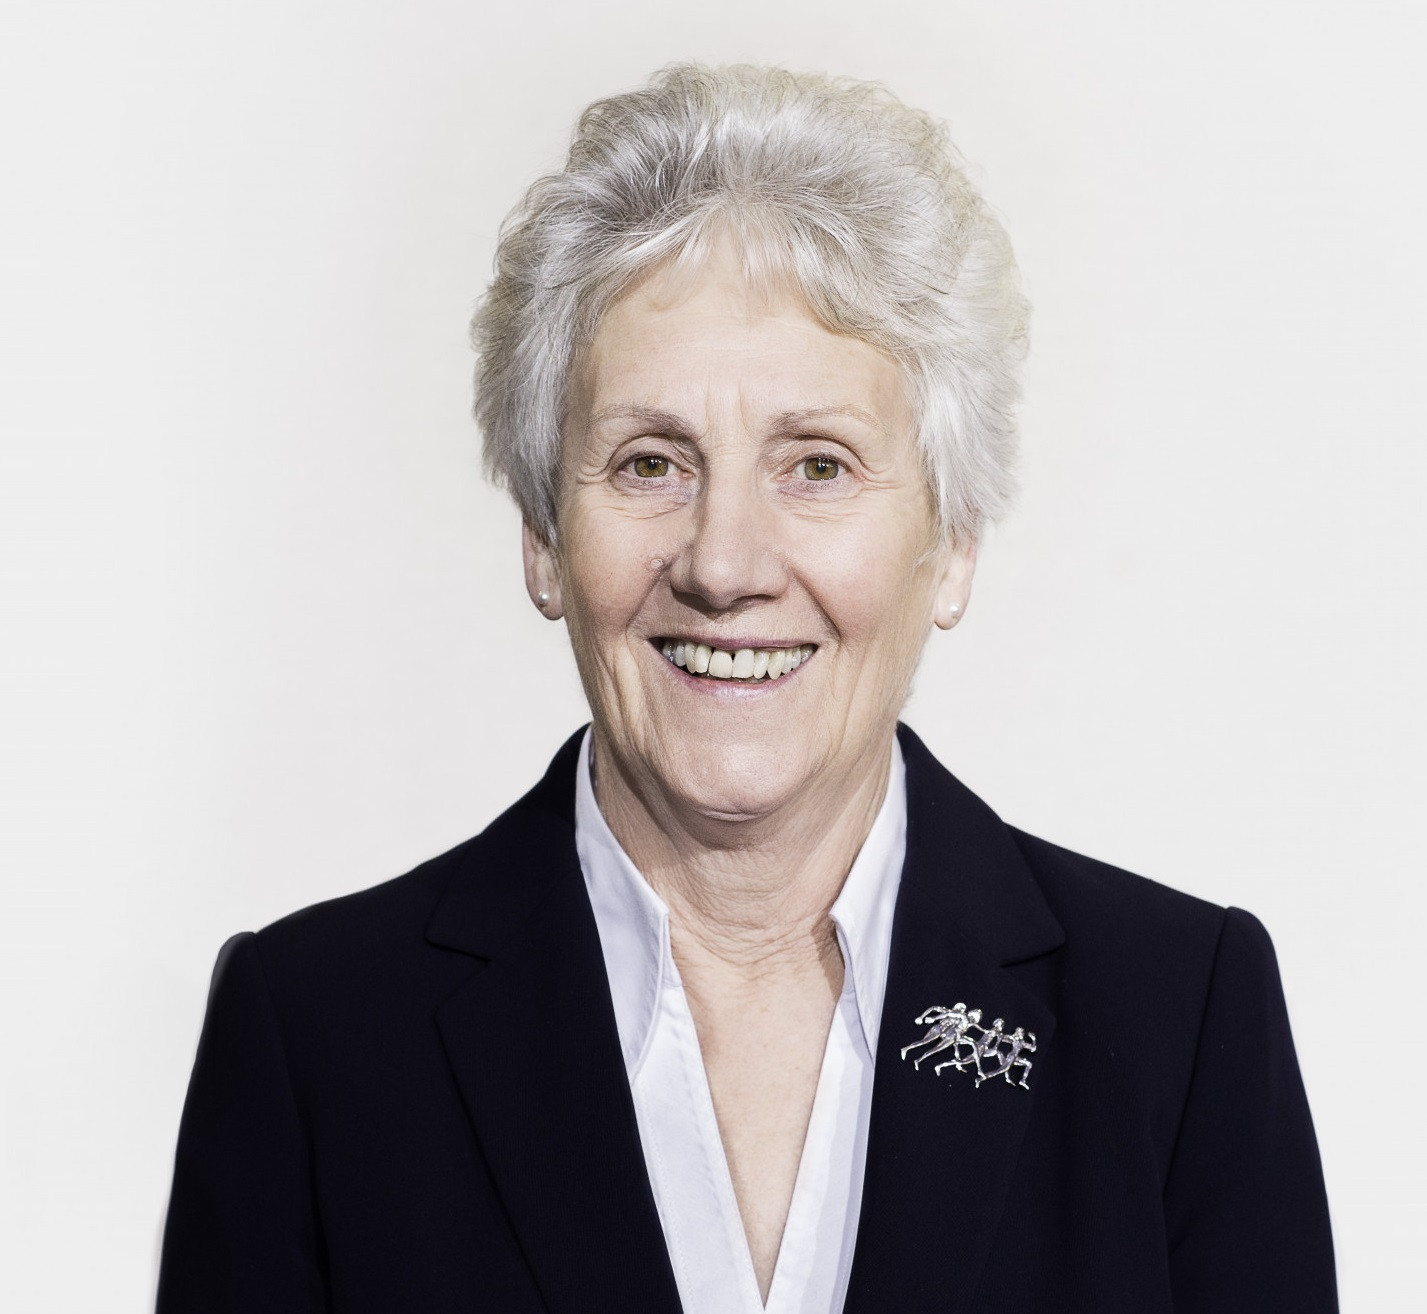 Dame Louise Martin: A proud moment to be celebrating 90-year anniversary of Commonwealth Sport